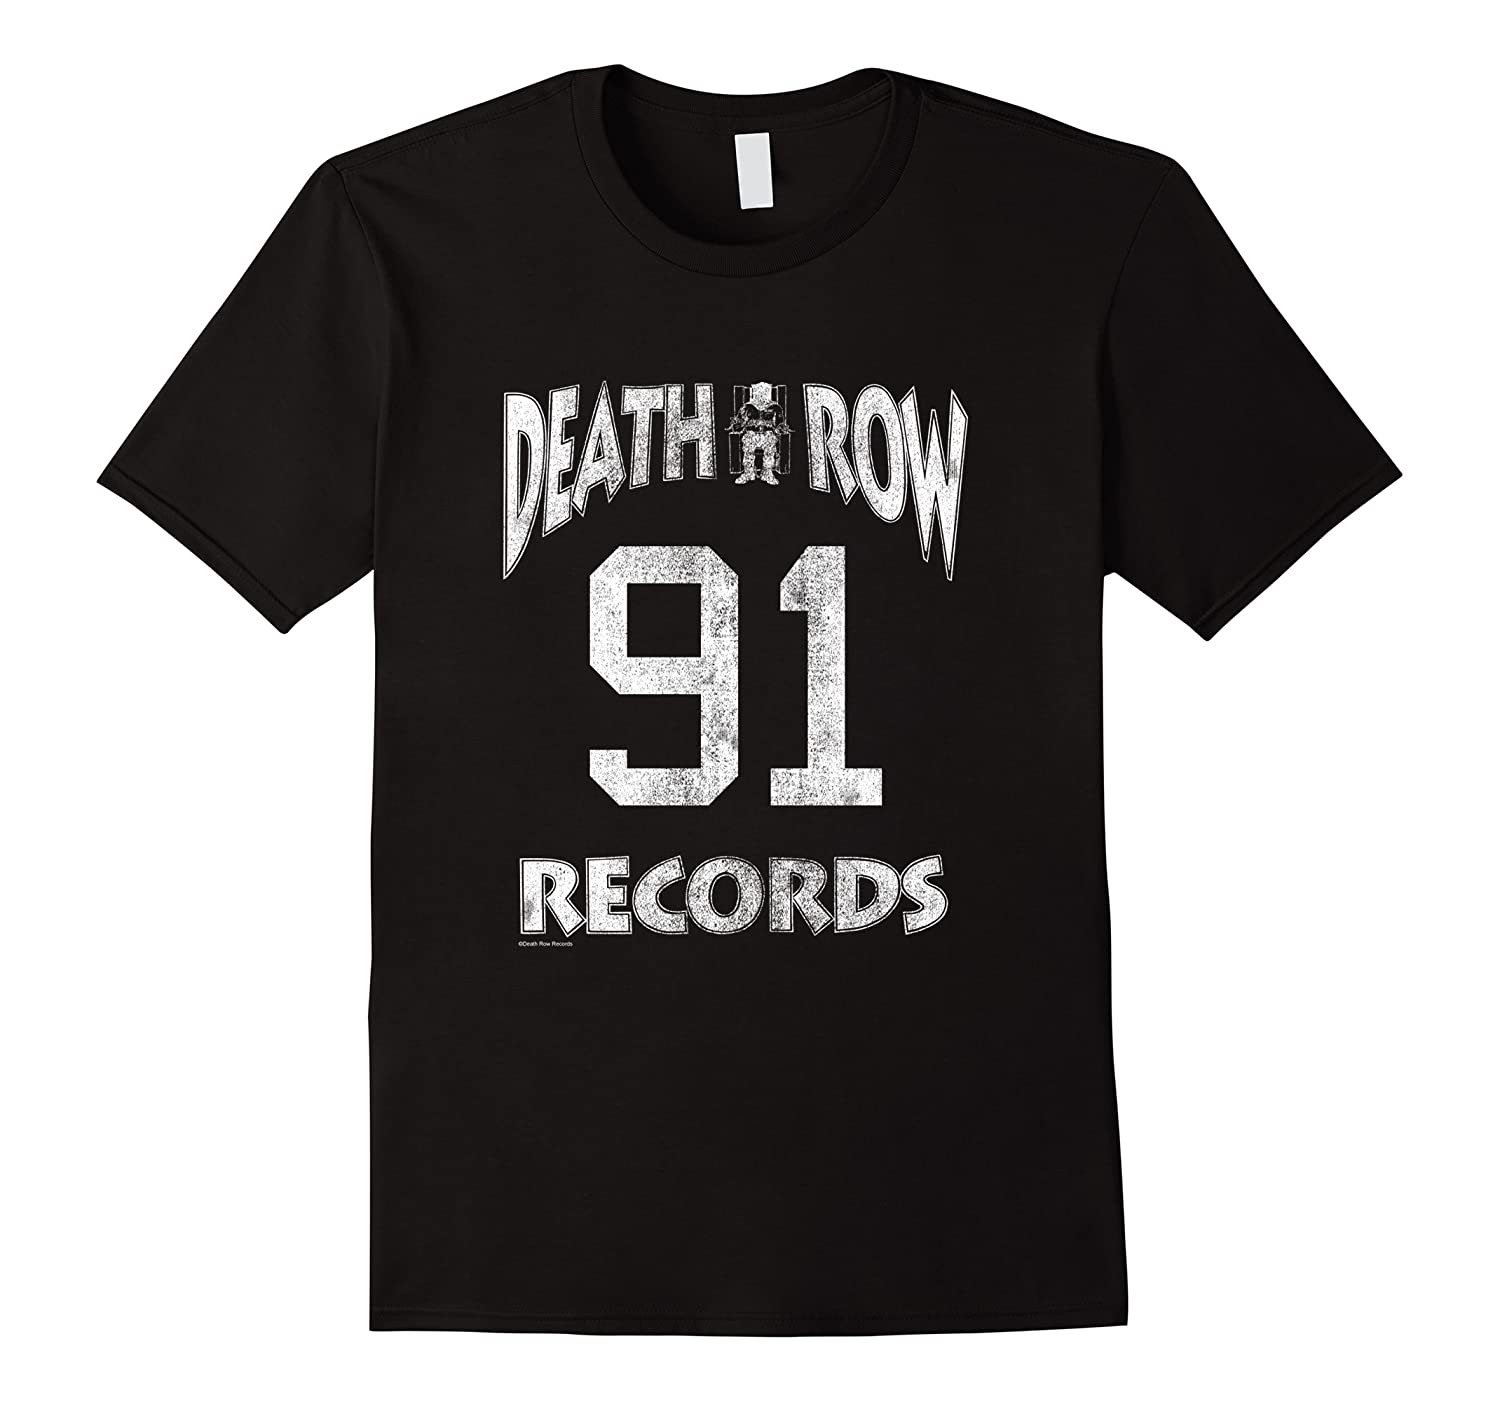 Death Row Records Athletic 91 Distressed T-shirt Men Short Sleeve